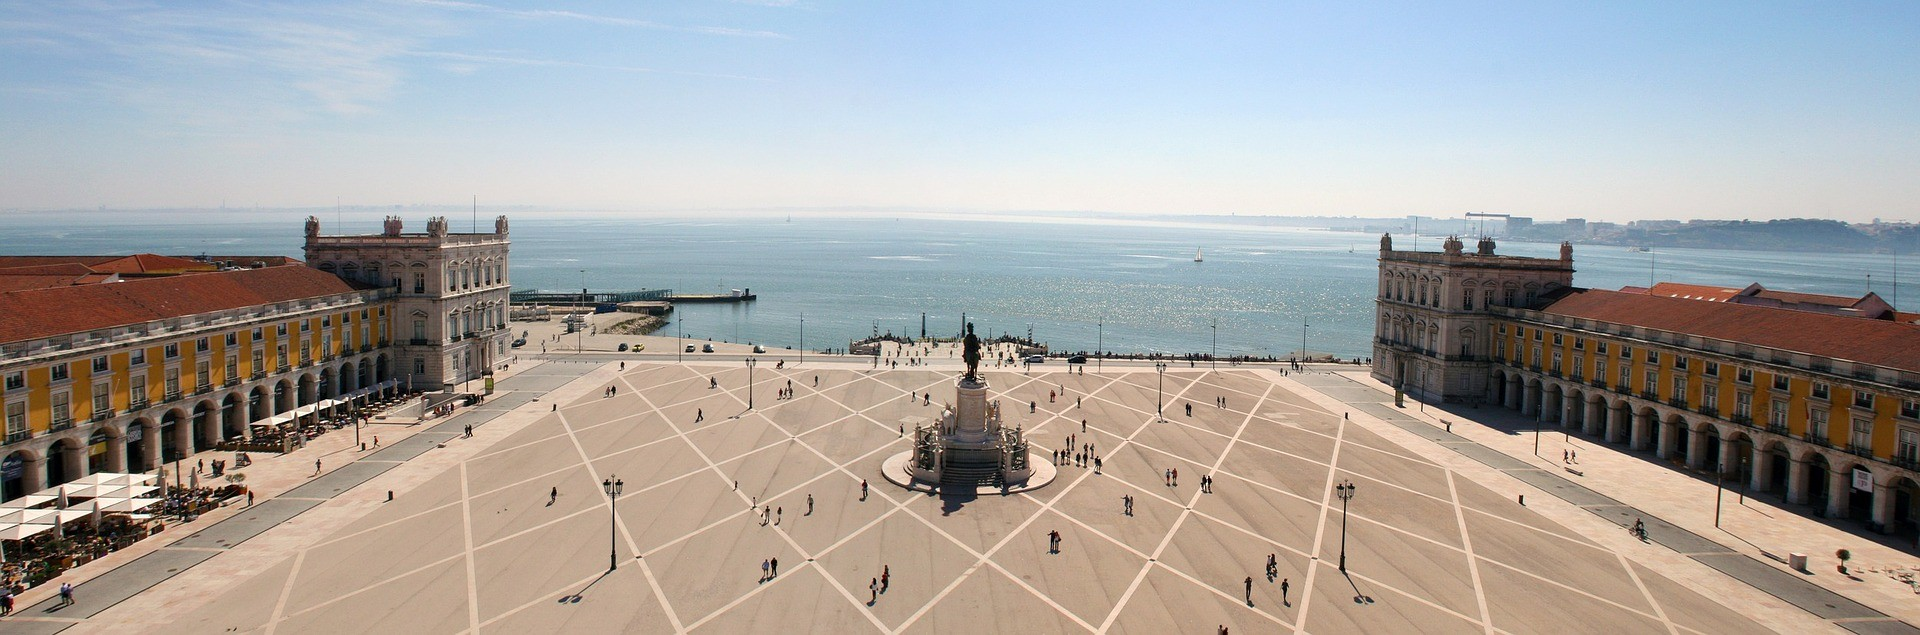 A large square in Lisbon.